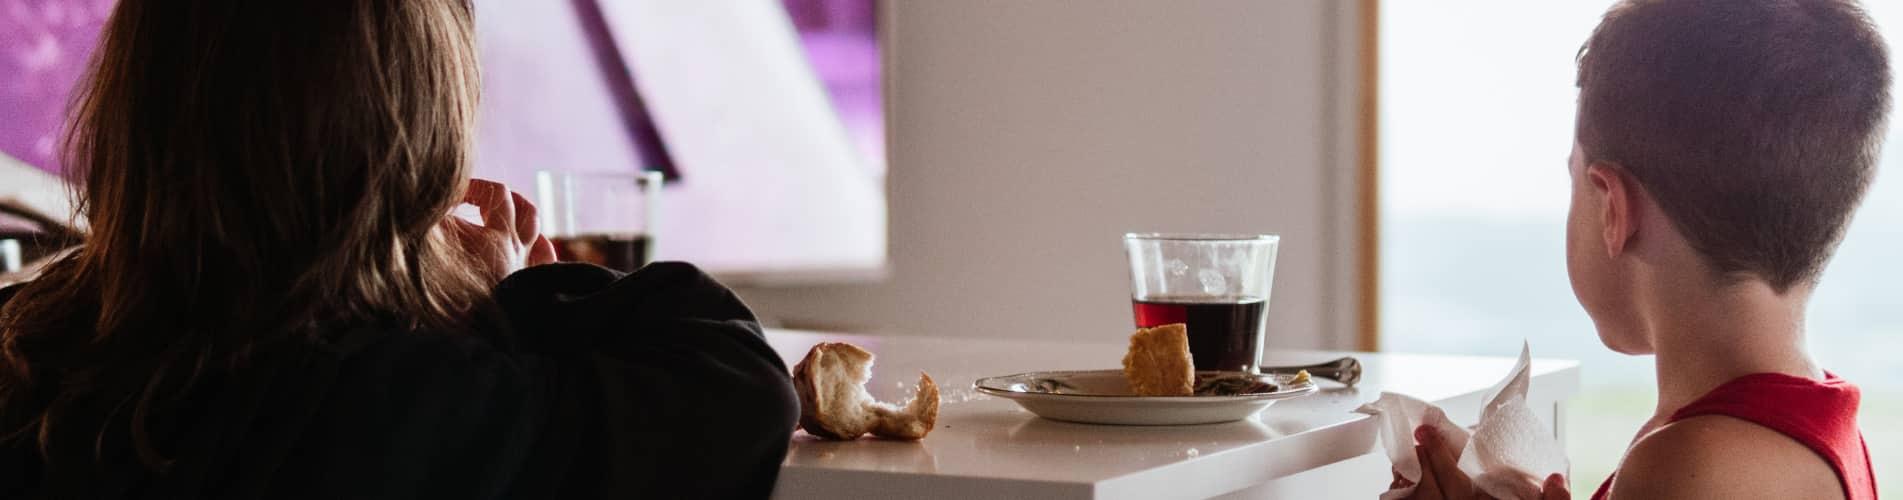 Ways Distracted Eating Can Decrease Your Health